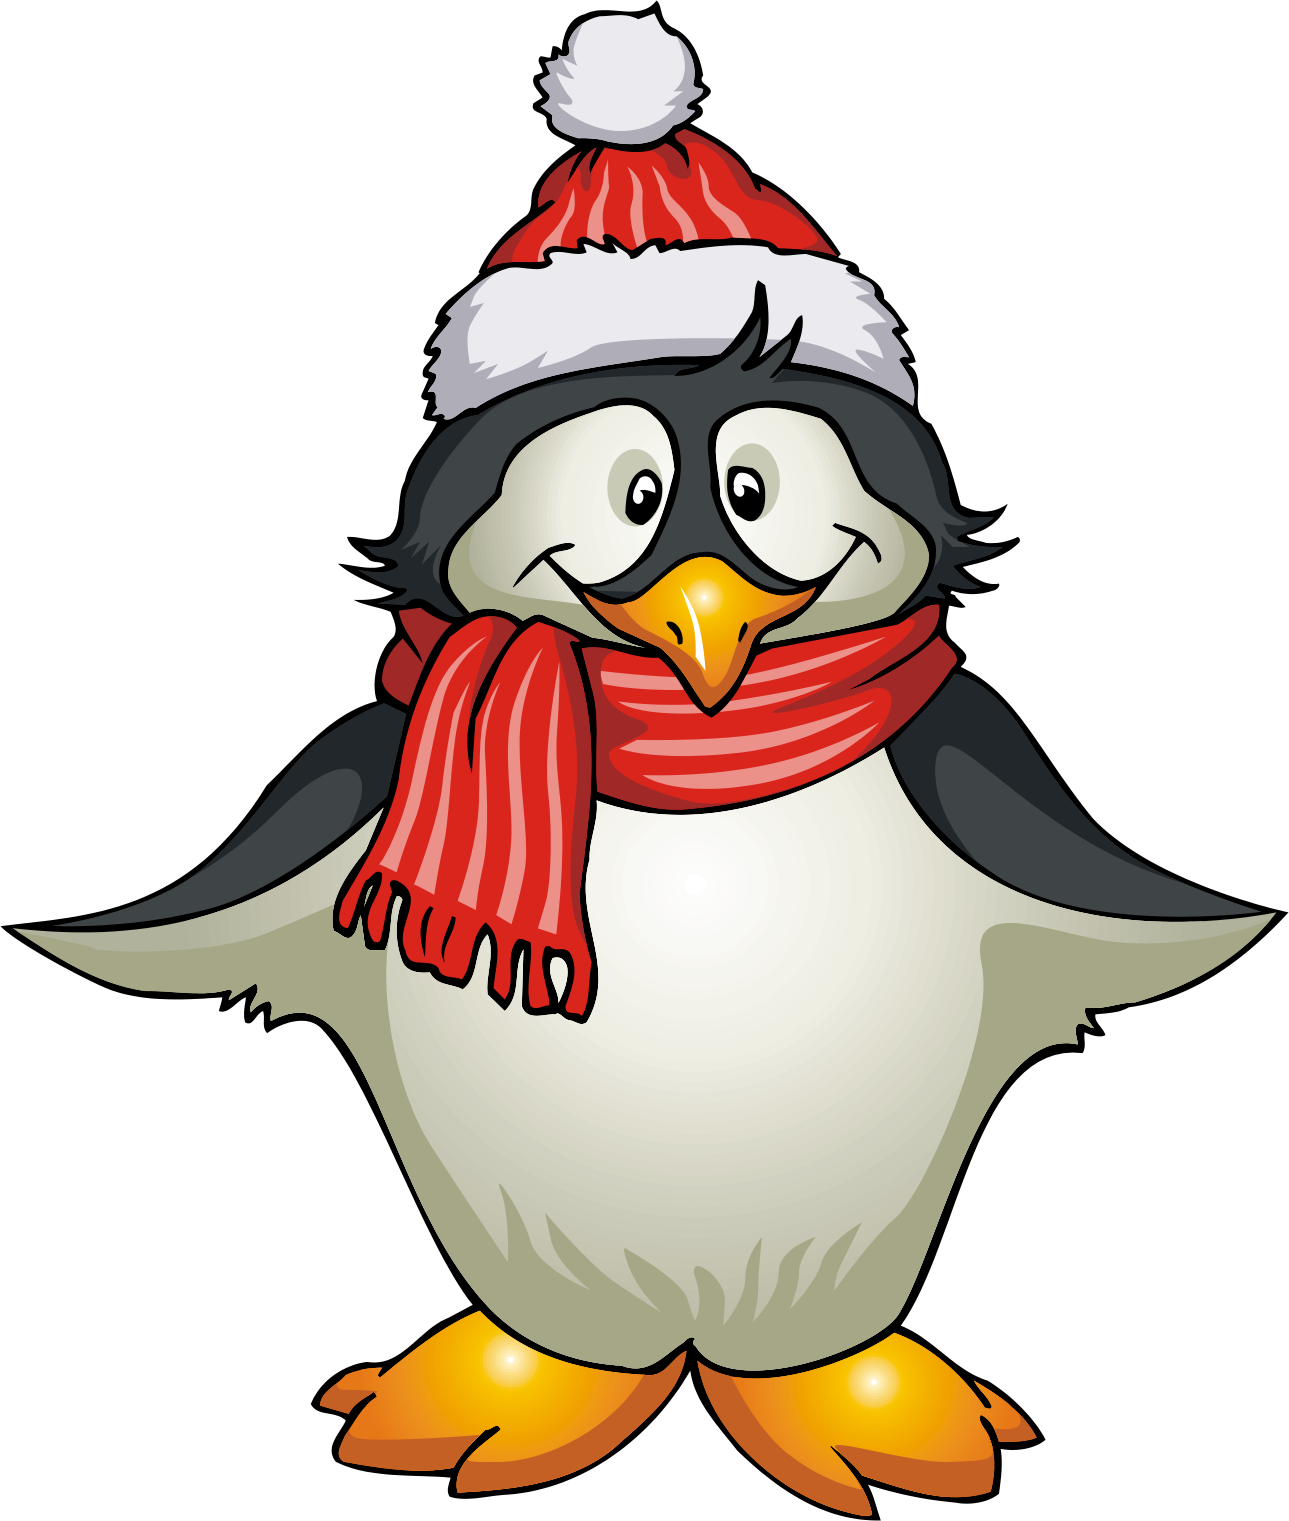 19 Free Winter Clip Art Free Cliparts Th-19 Free Winter Clip Art Free Cliparts That You Can Download To You-18